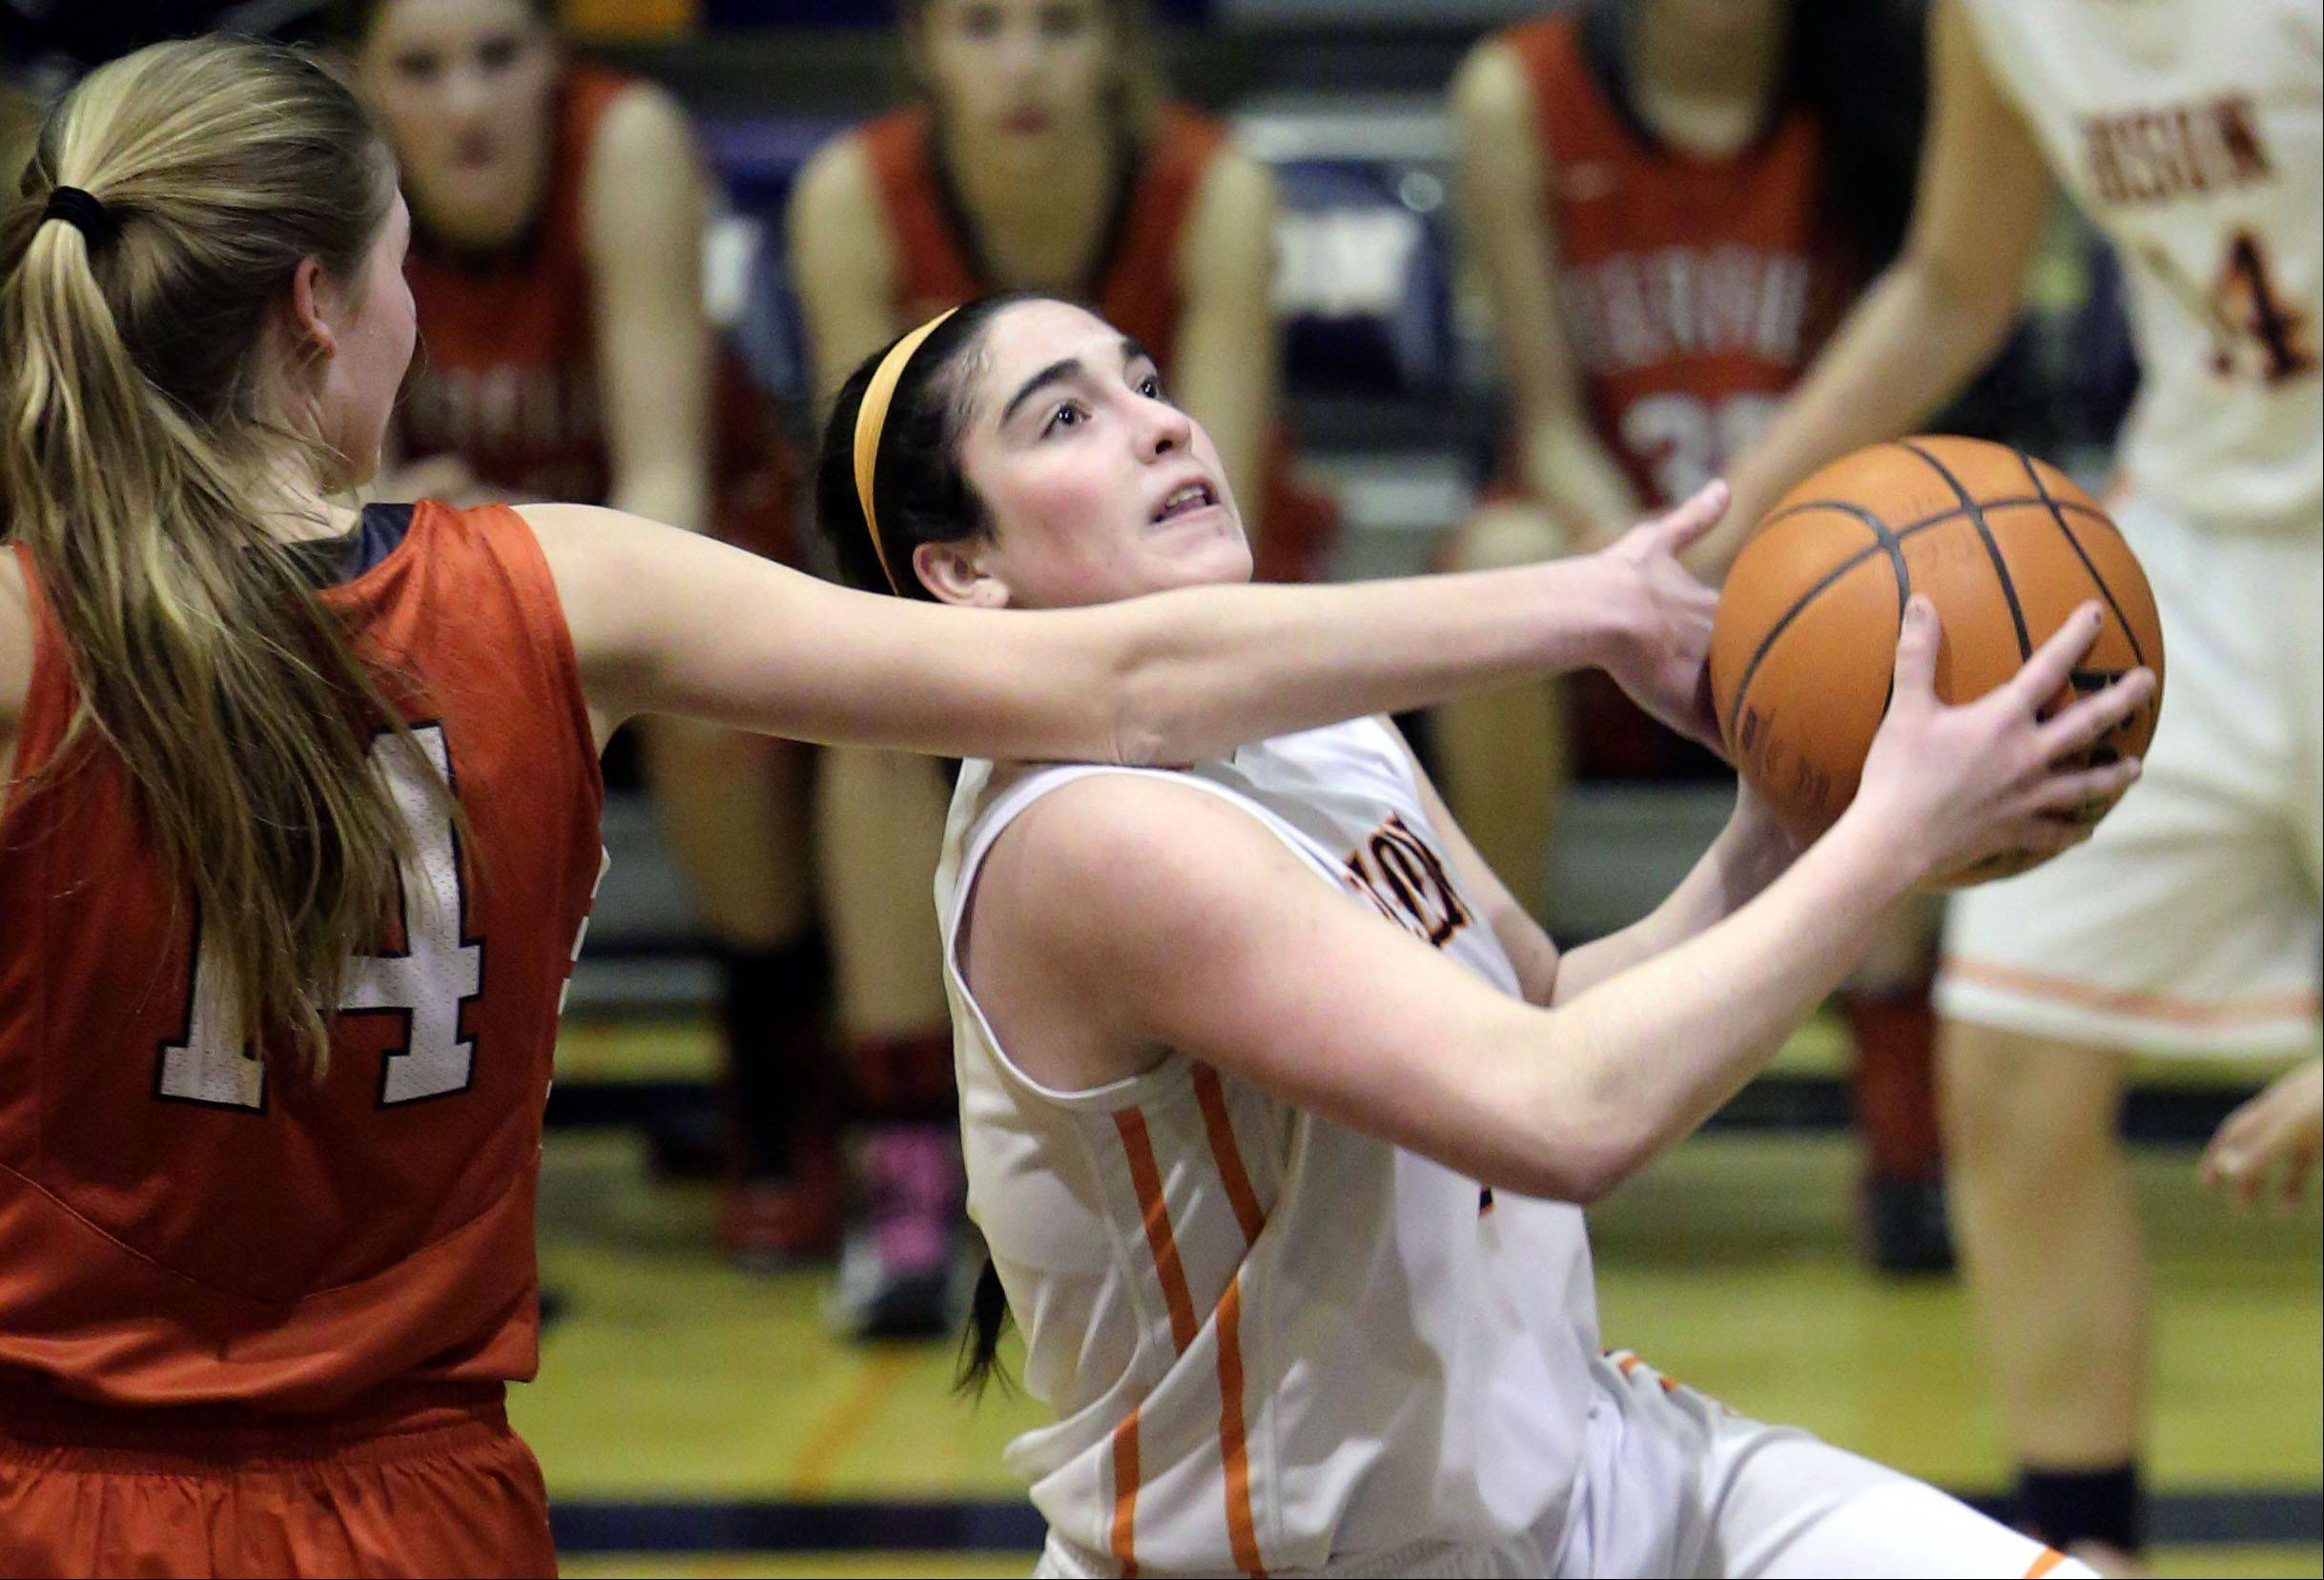 Buffalo Grove's Julie Jambrone, right, powers past Deerfield's Monica Fishbein on Monday night in Buffalo Grove.